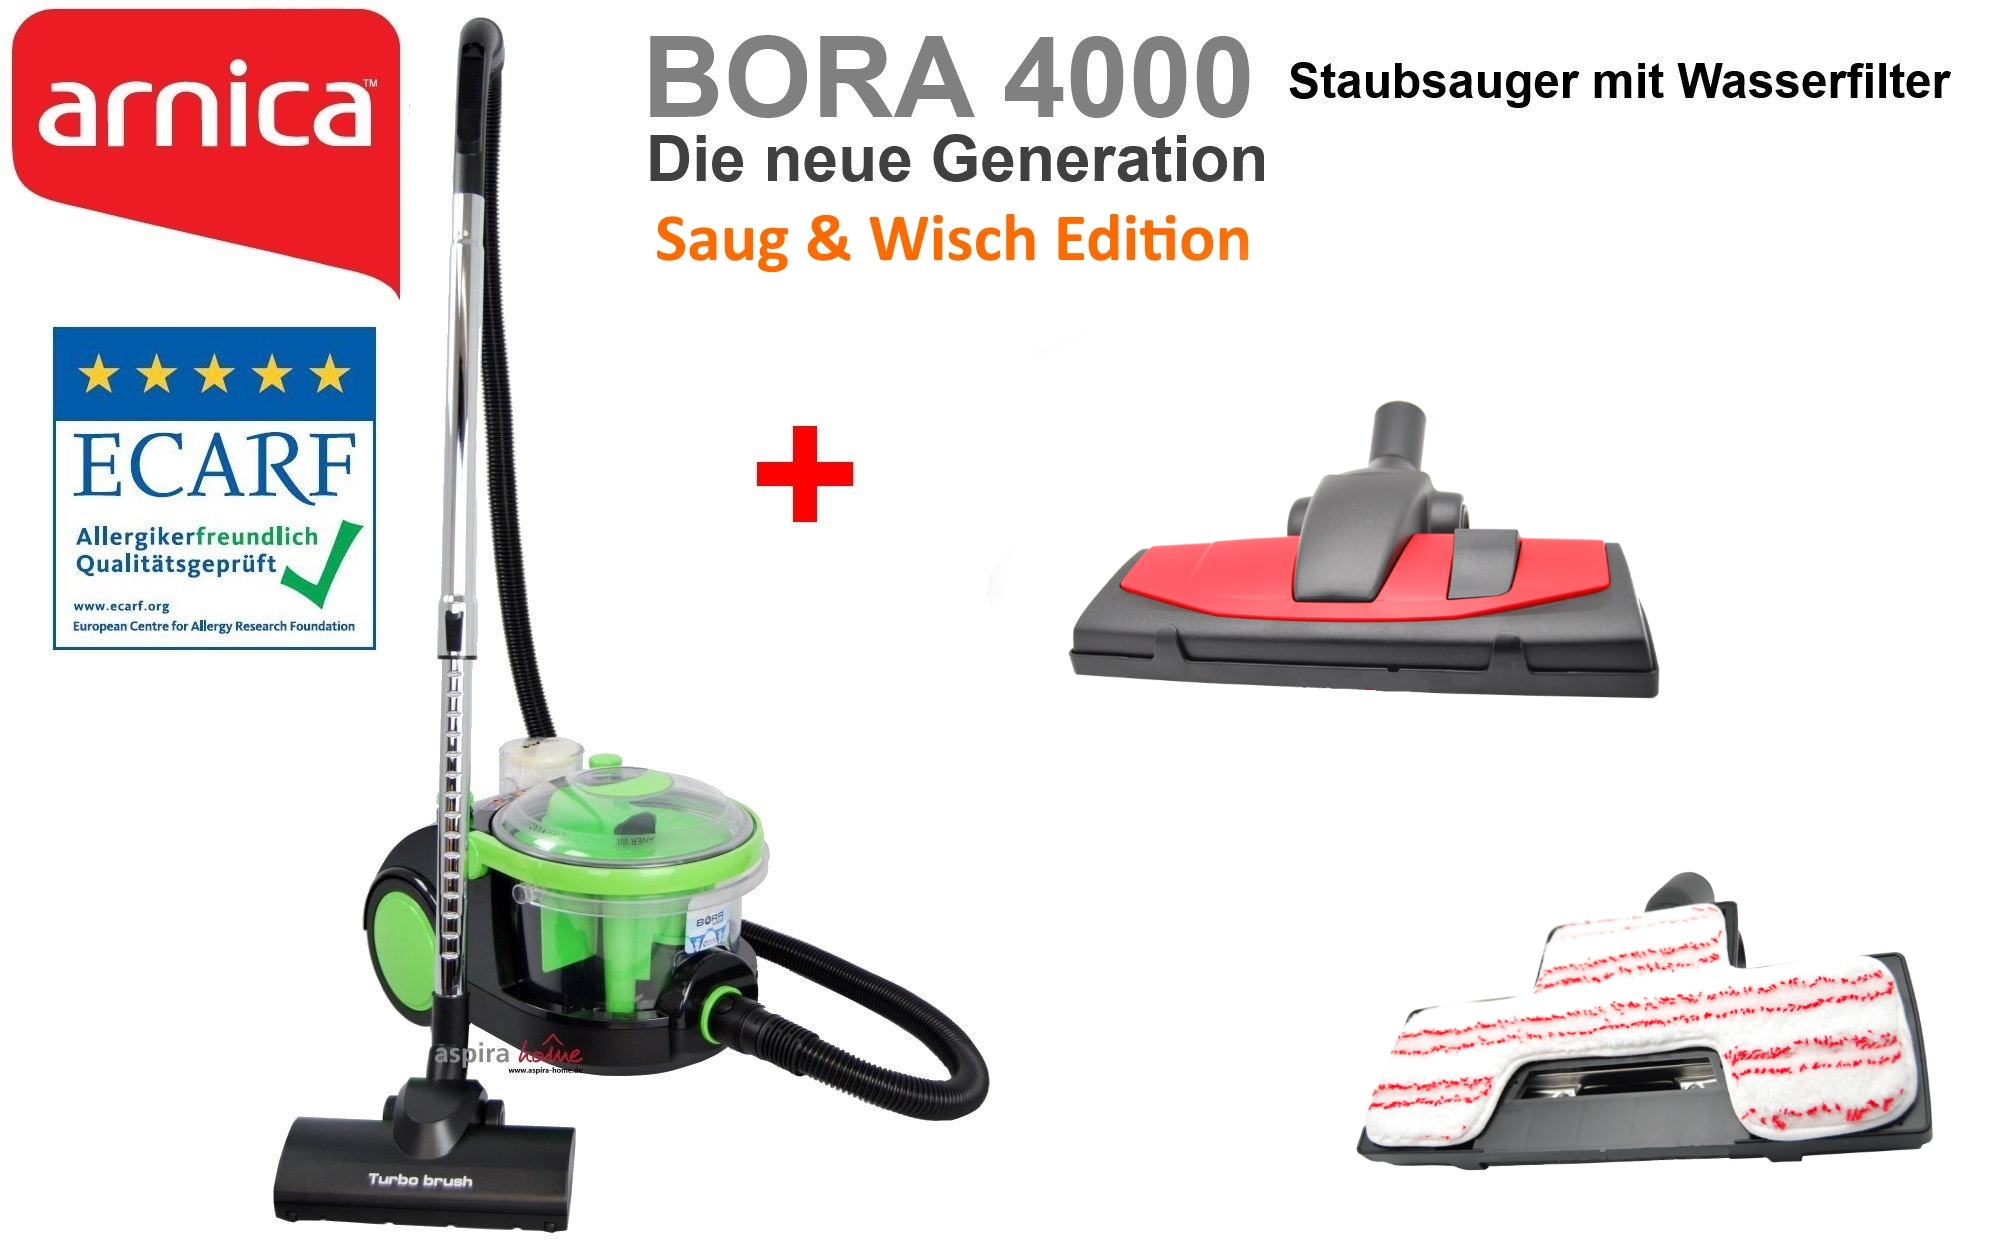 arnica bora 4000 saug wisch edition wasserstaubsauger staubsauger mit wasserfilter s. Black Bedroom Furniture Sets. Home Design Ideas